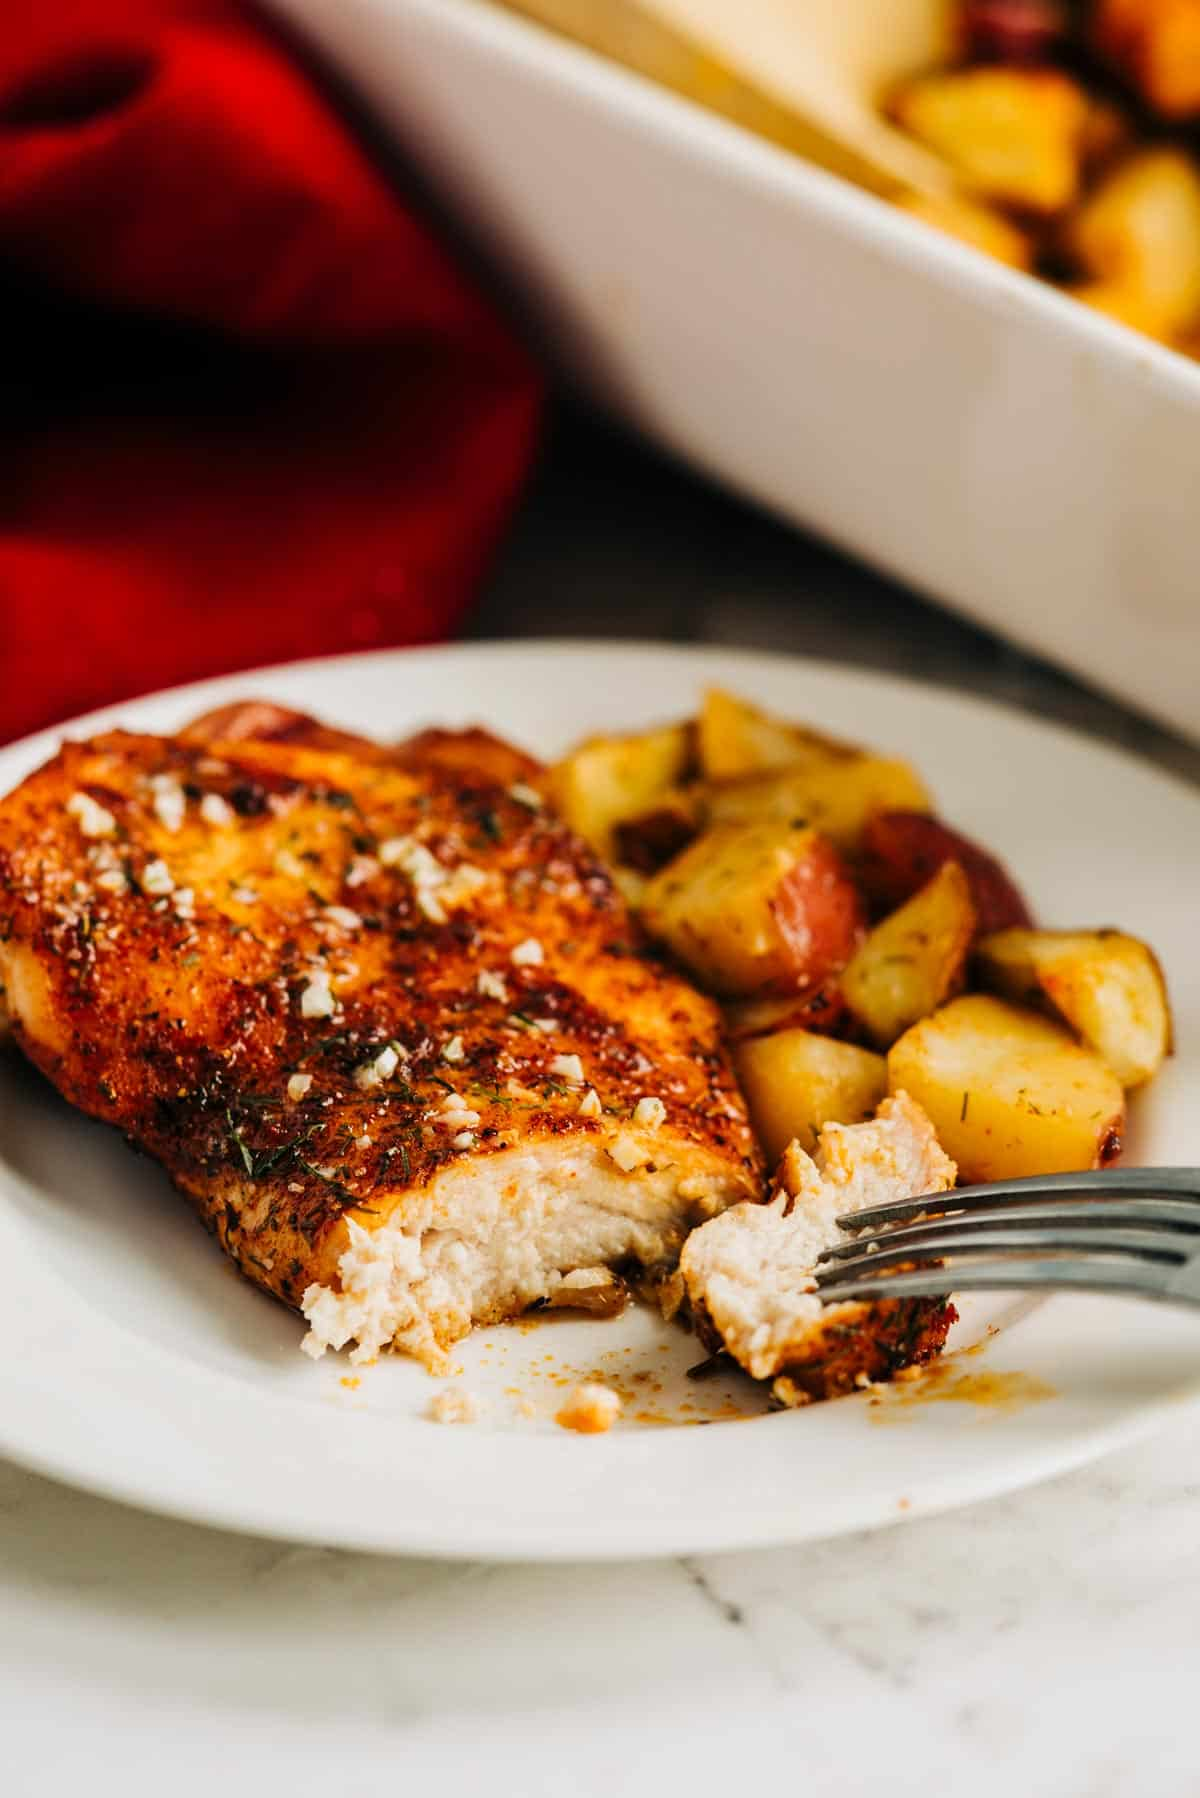 Chicken breast on a plate with a bite cut out